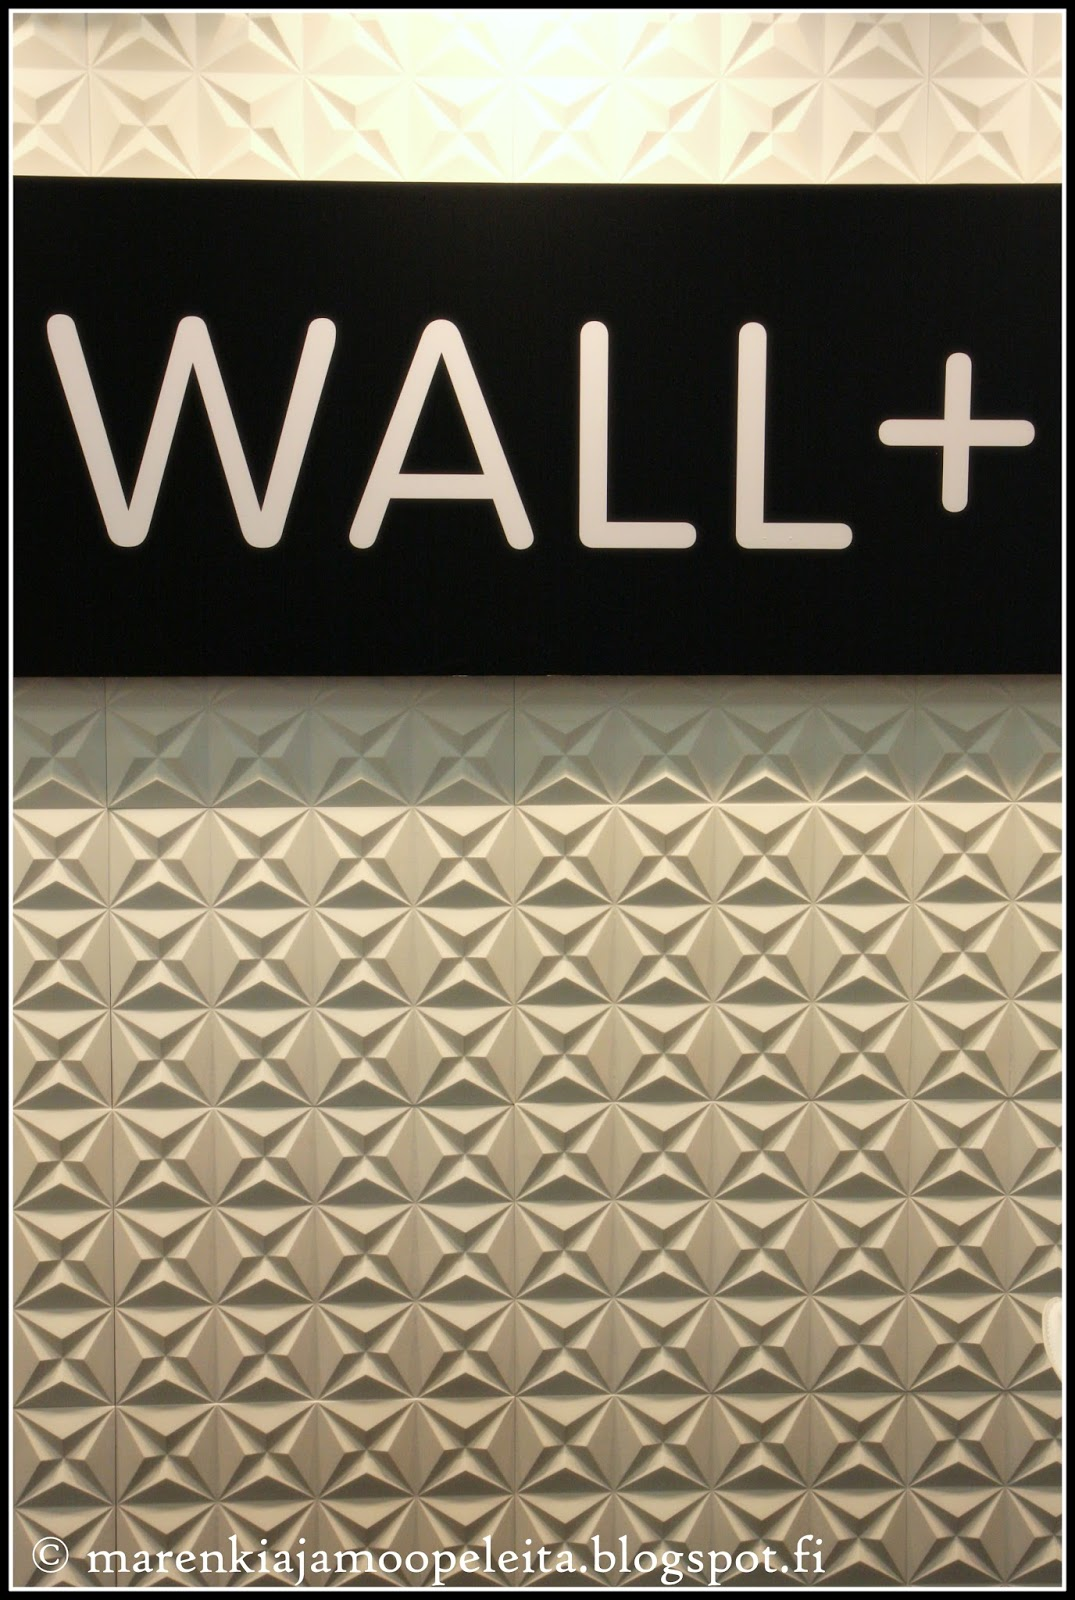 Wallcovering by Wall+